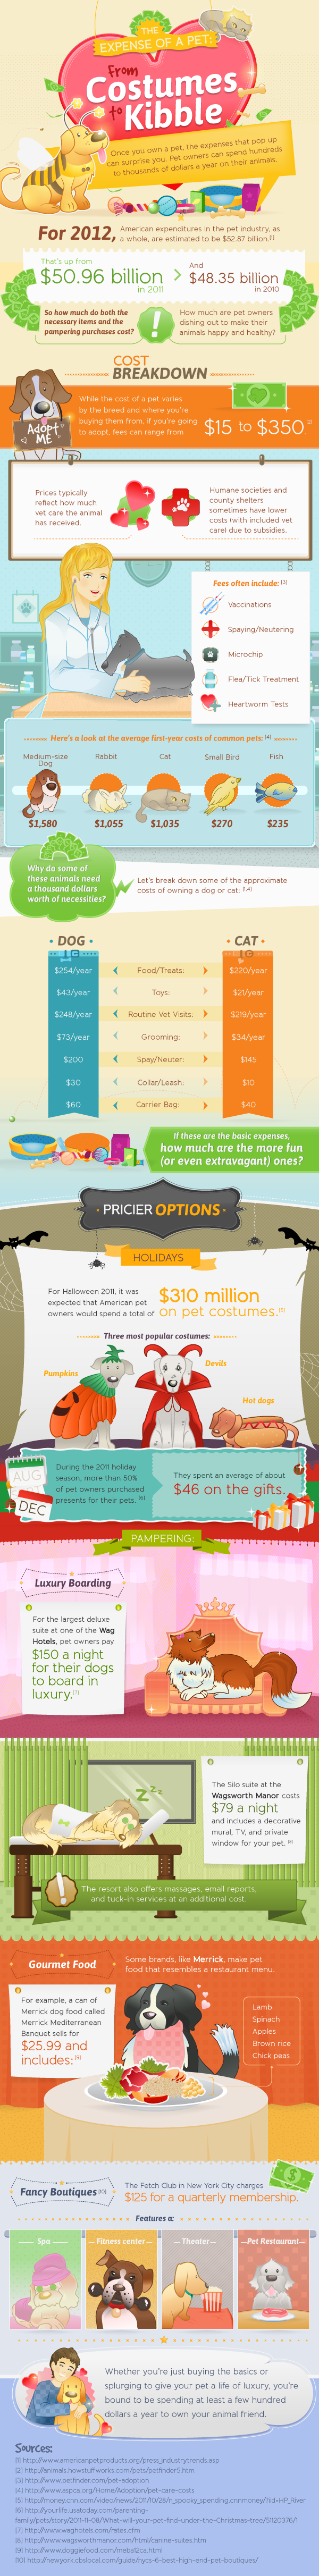 Pet Cost Estimator-Infographic